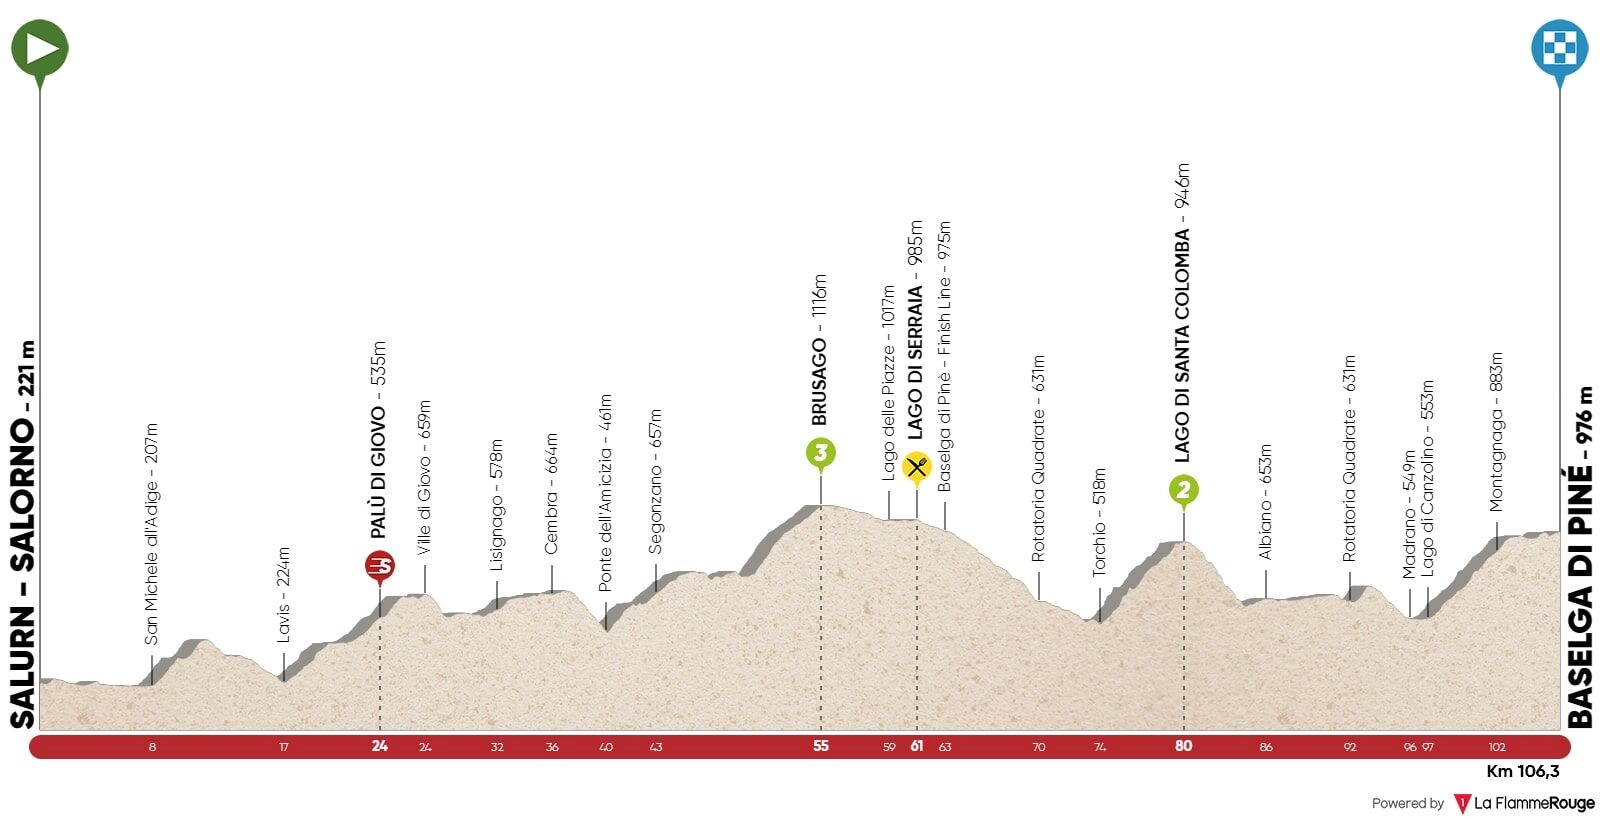 masnada tour of the alps